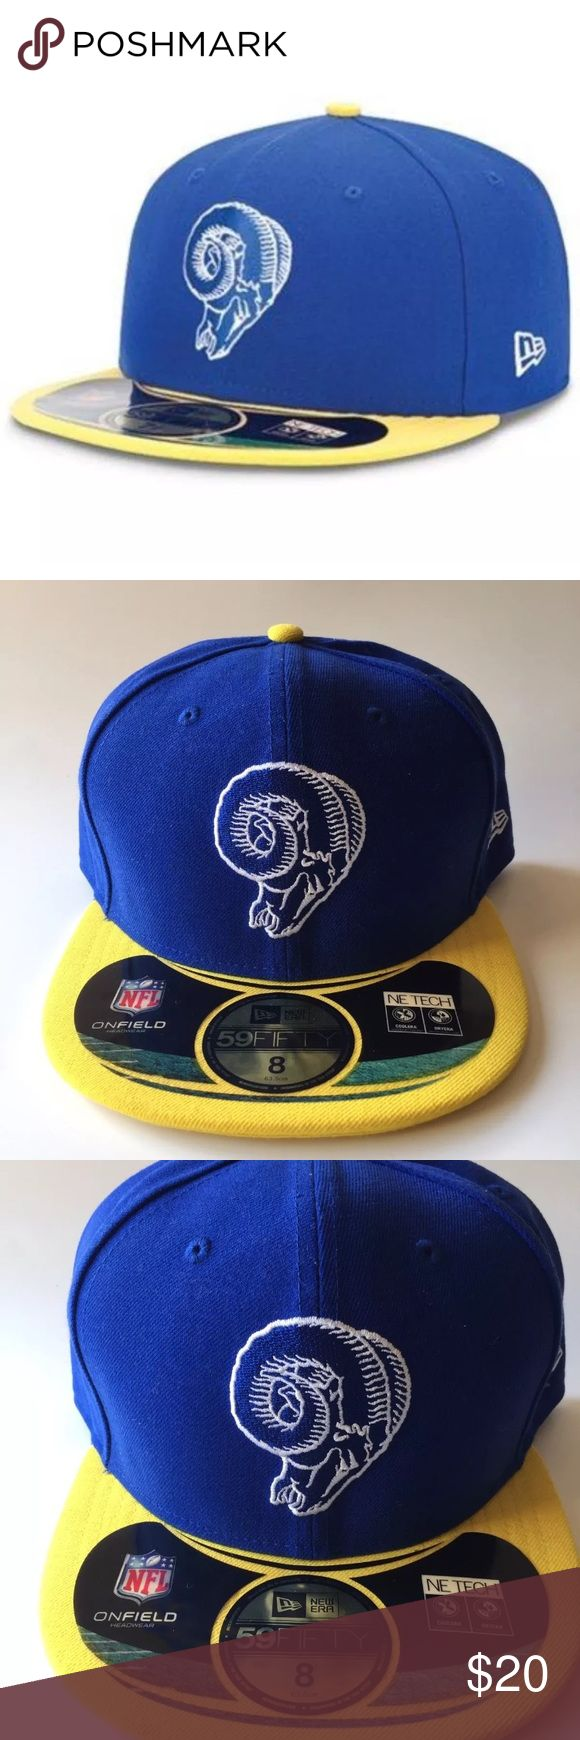 New Era 59Fifty Los Angeles Rams Fitted Hat Size 8 New Era 59Fifty Los Angeles Rams Official On Field Classics Fitted Hat Cap Size 8  Brand : NewEra  Style : 59Fifty  Size : 8  Color : Blue/Yellow  Material : 100% Polyester  Embroidered white New Era logo on the left side of the hat  BRAND NEW New Era Accessories Hats